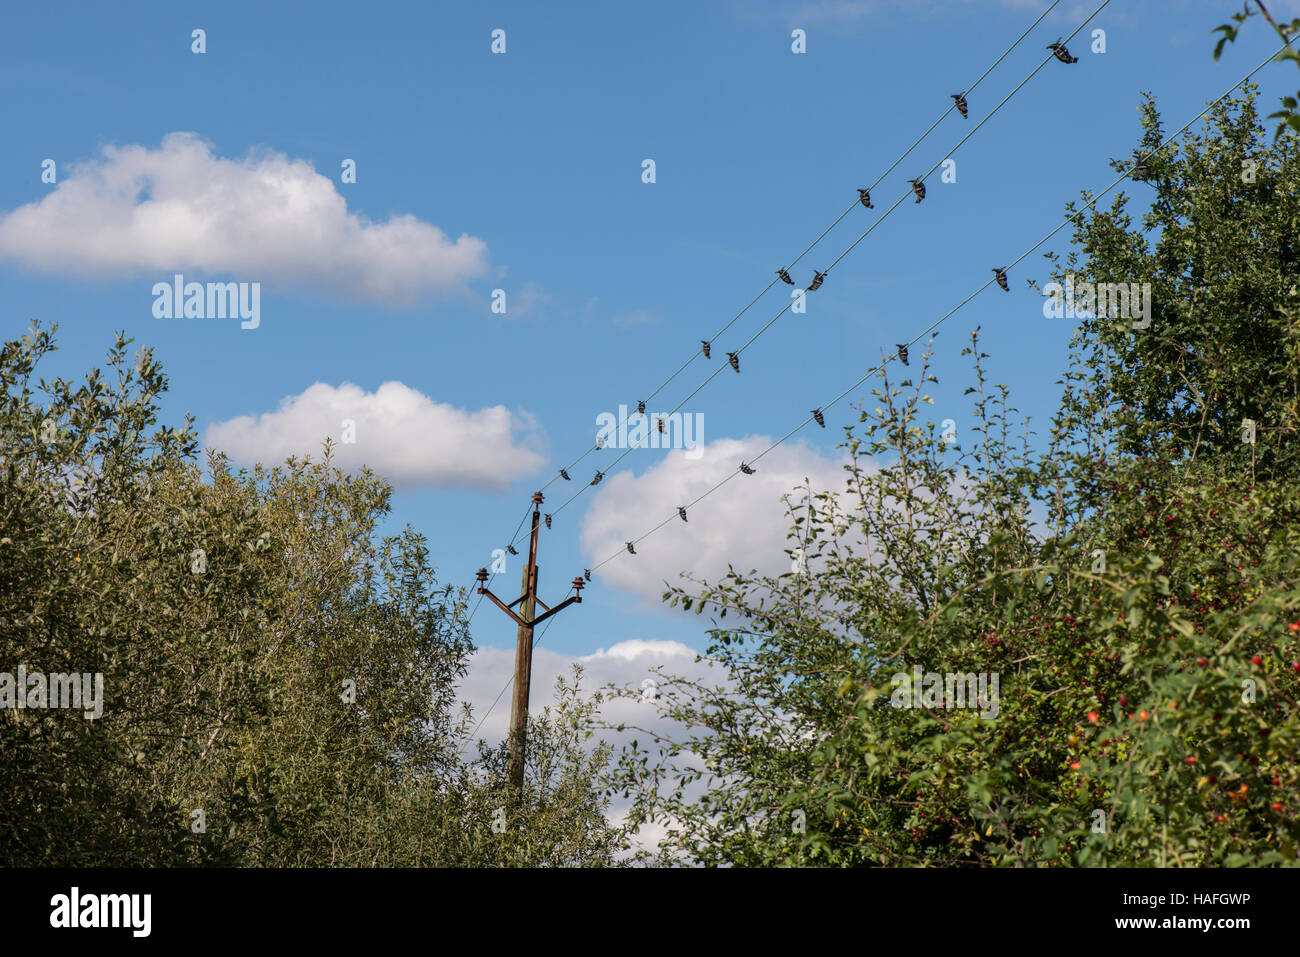 Swan Deflectors, devices to prevent birds from hitting electricity cables and avian collisions at Whisby Nature - Stock Image